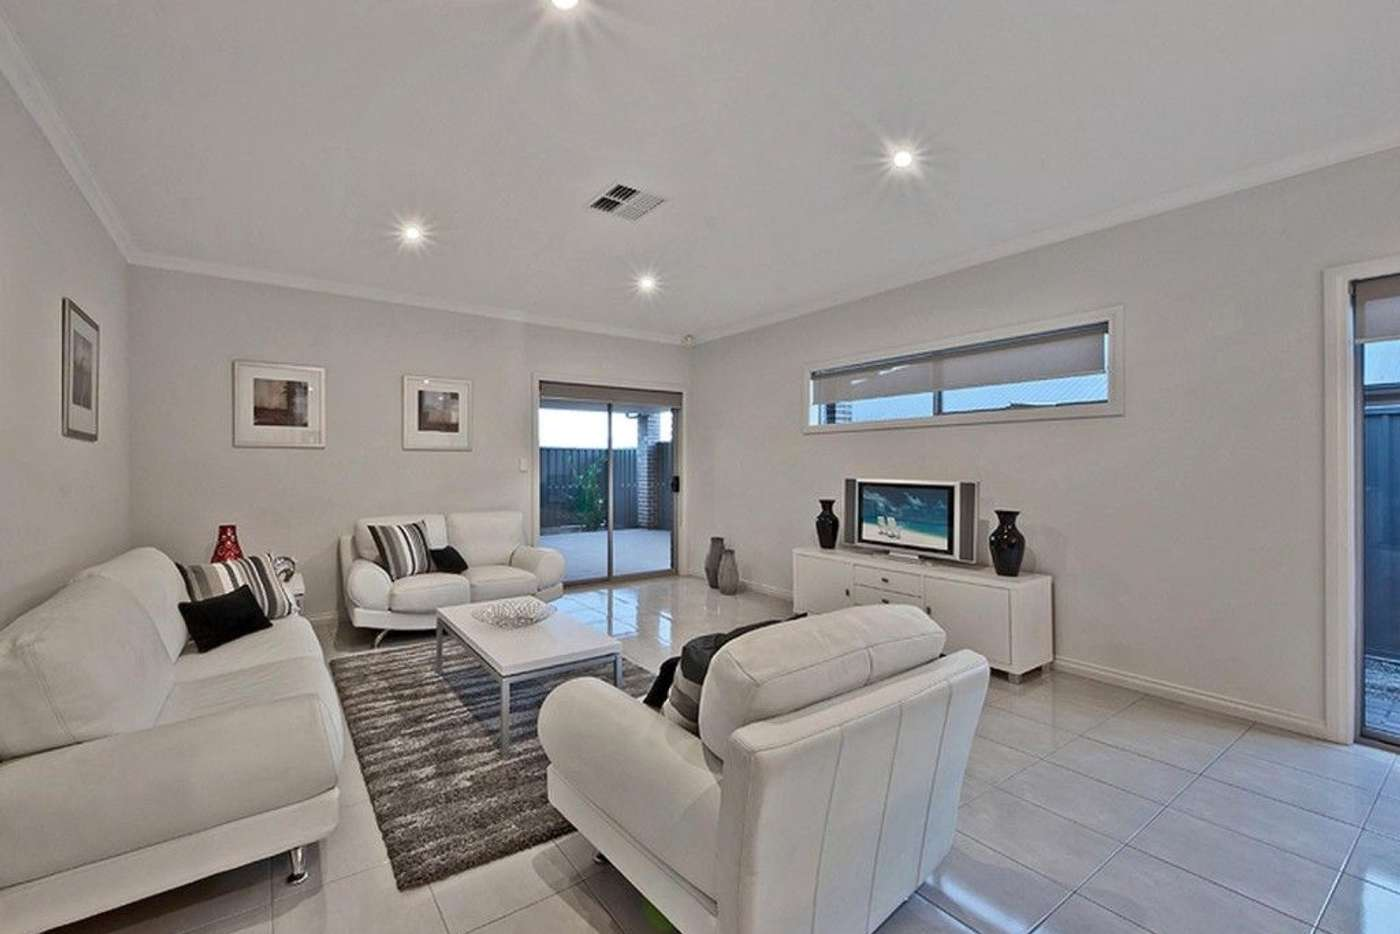 Sixth view of Homely house listing, 18 Campbell Circuit, Gawler East SA 5118